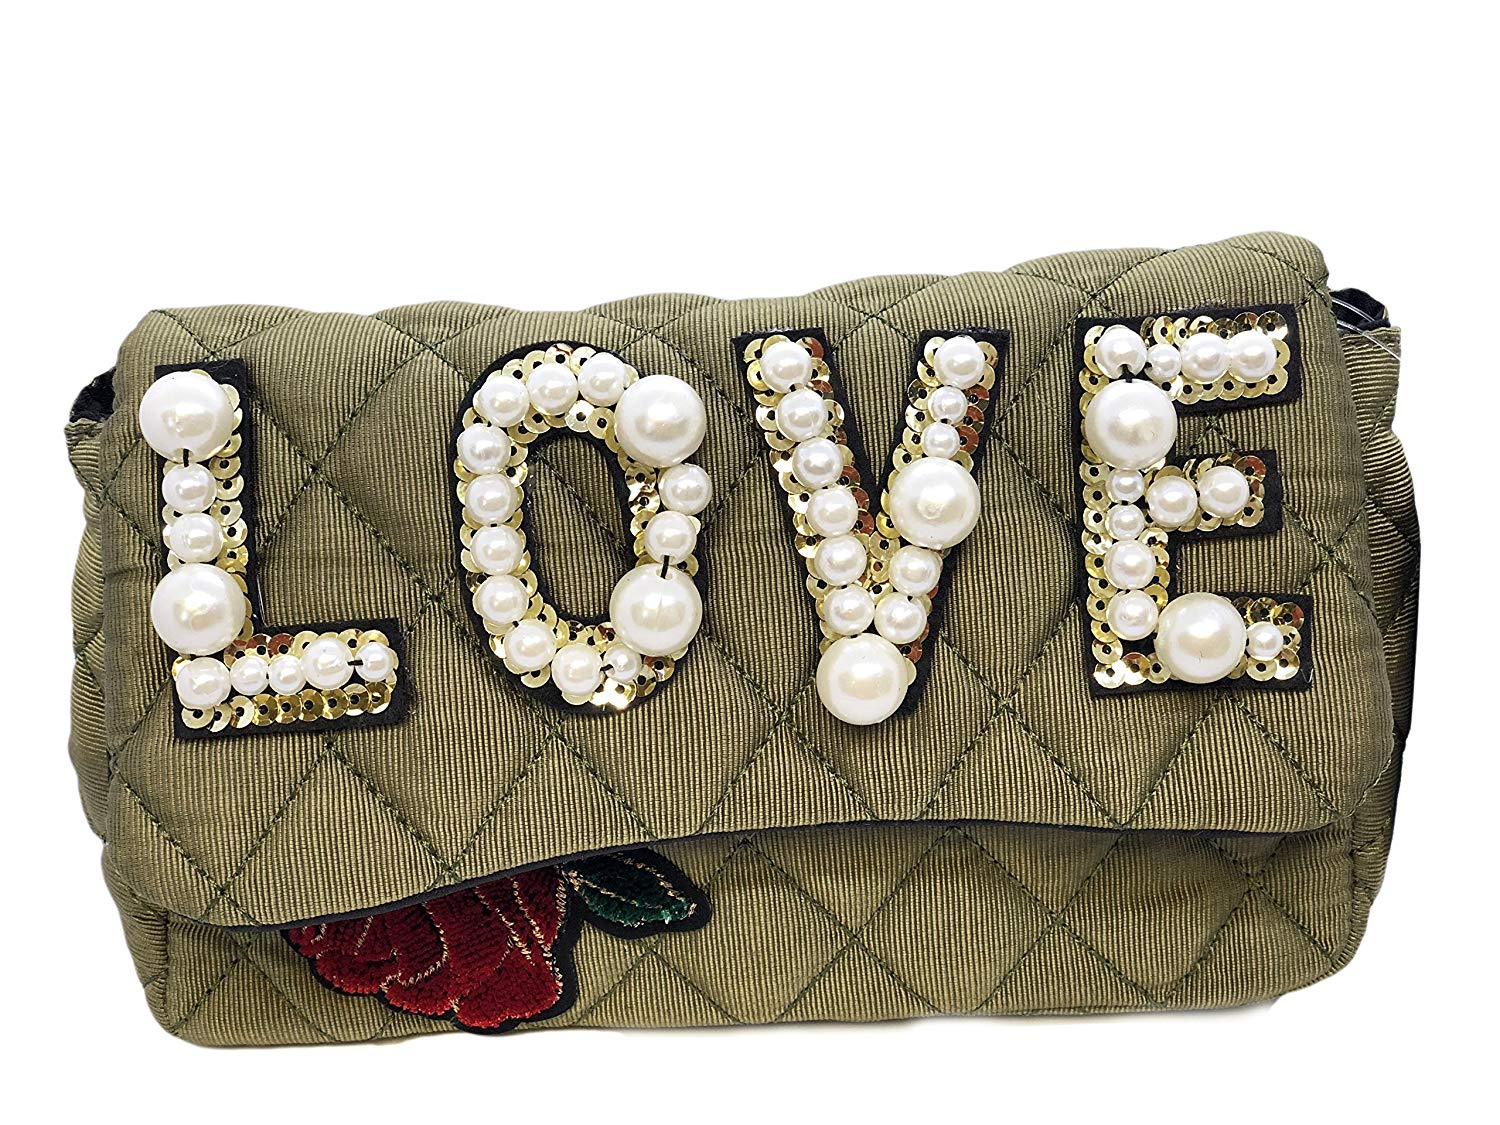 c31a7279602c Inzi Inpired Bees Butterflies and Lions belt bag. 99.99. null. Get  Quotations · Inzi Pearly Love Rose Quilted Front Flap Handbag